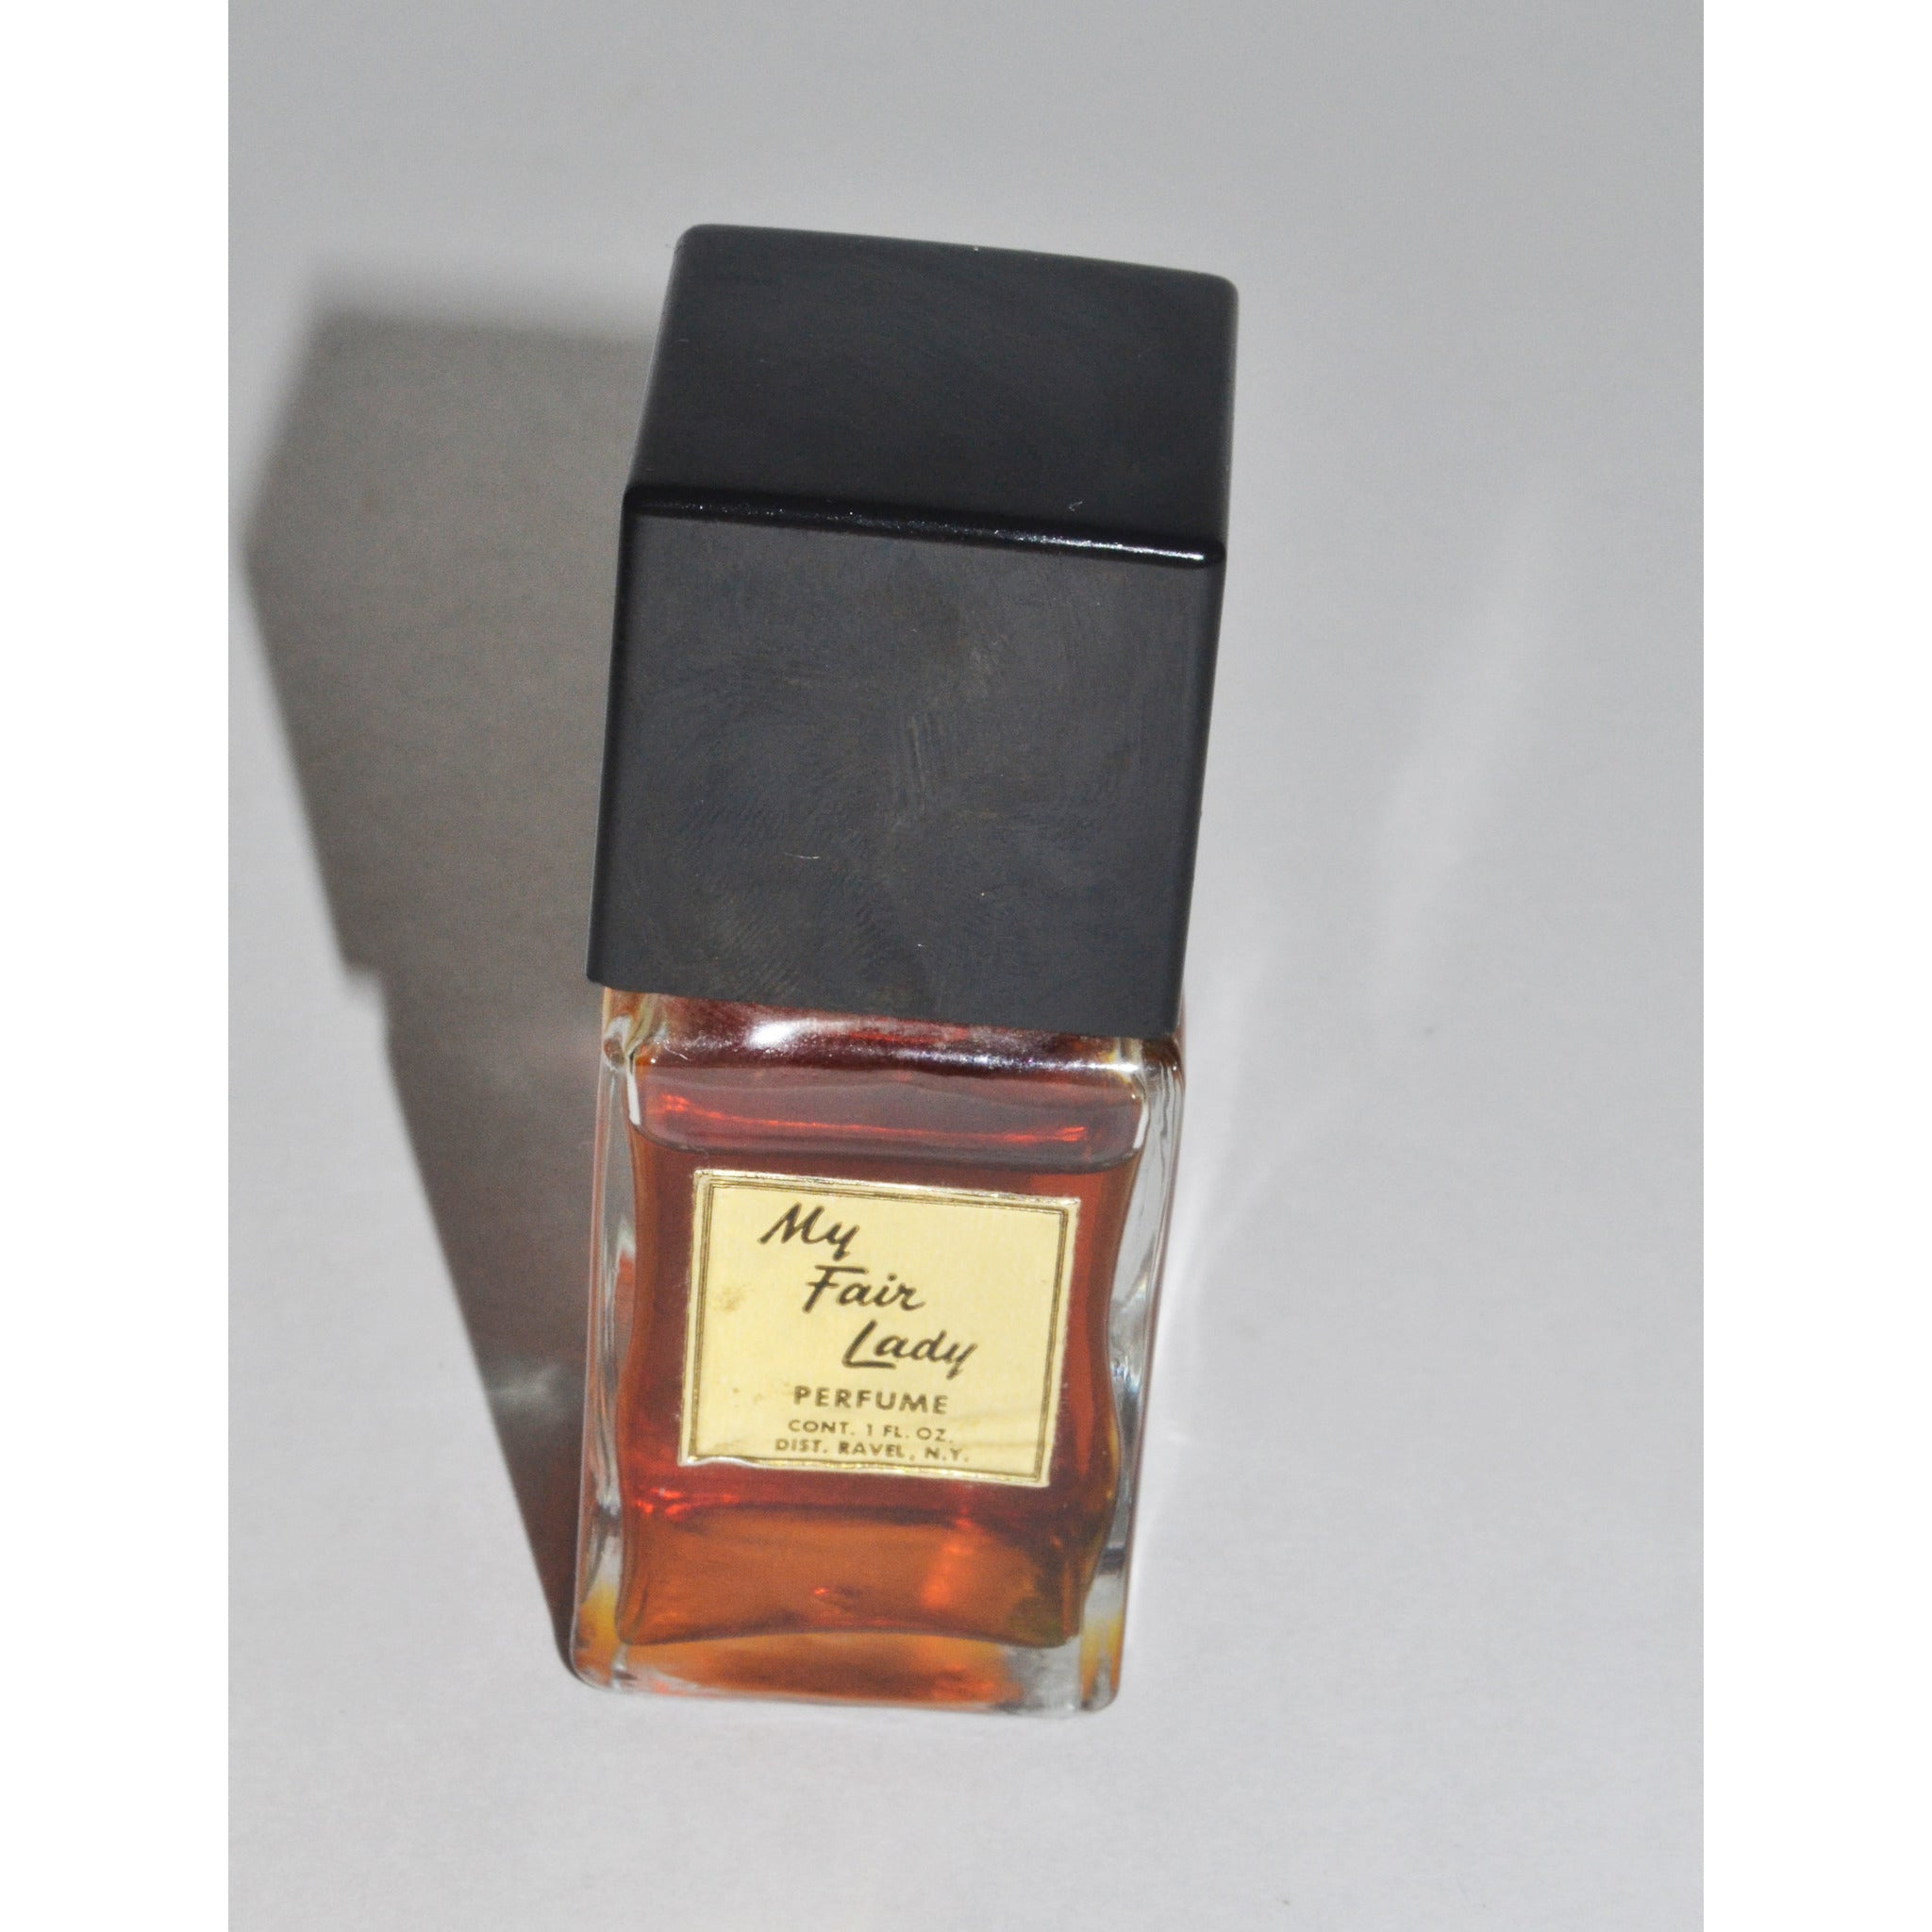 Vintage My Fair Lady Perfume By Ravel